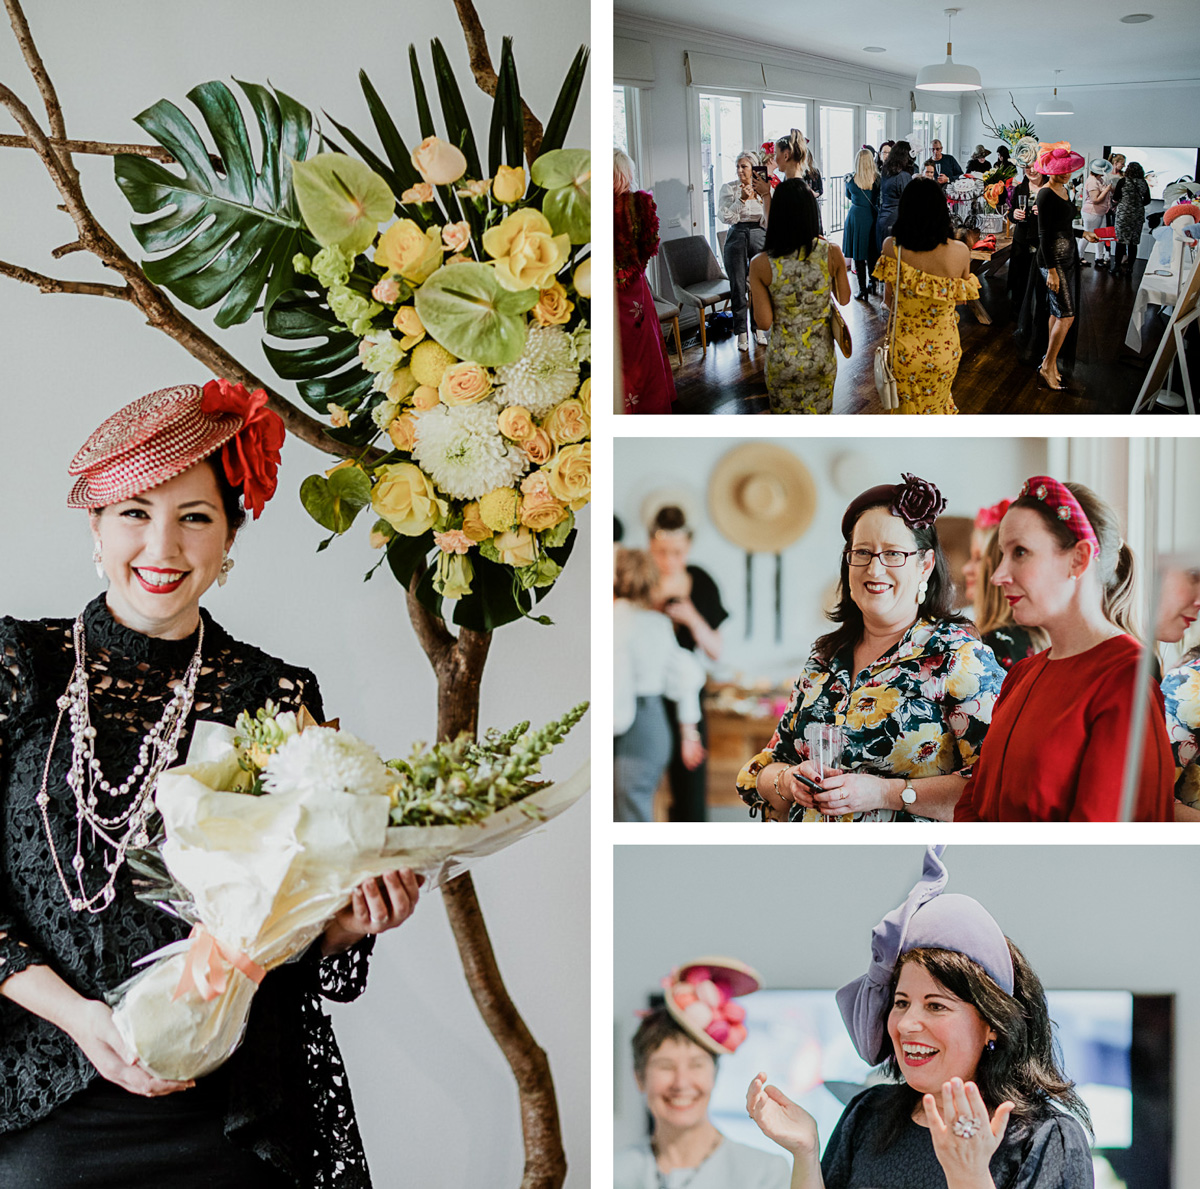 winners at millinery event - best dressed